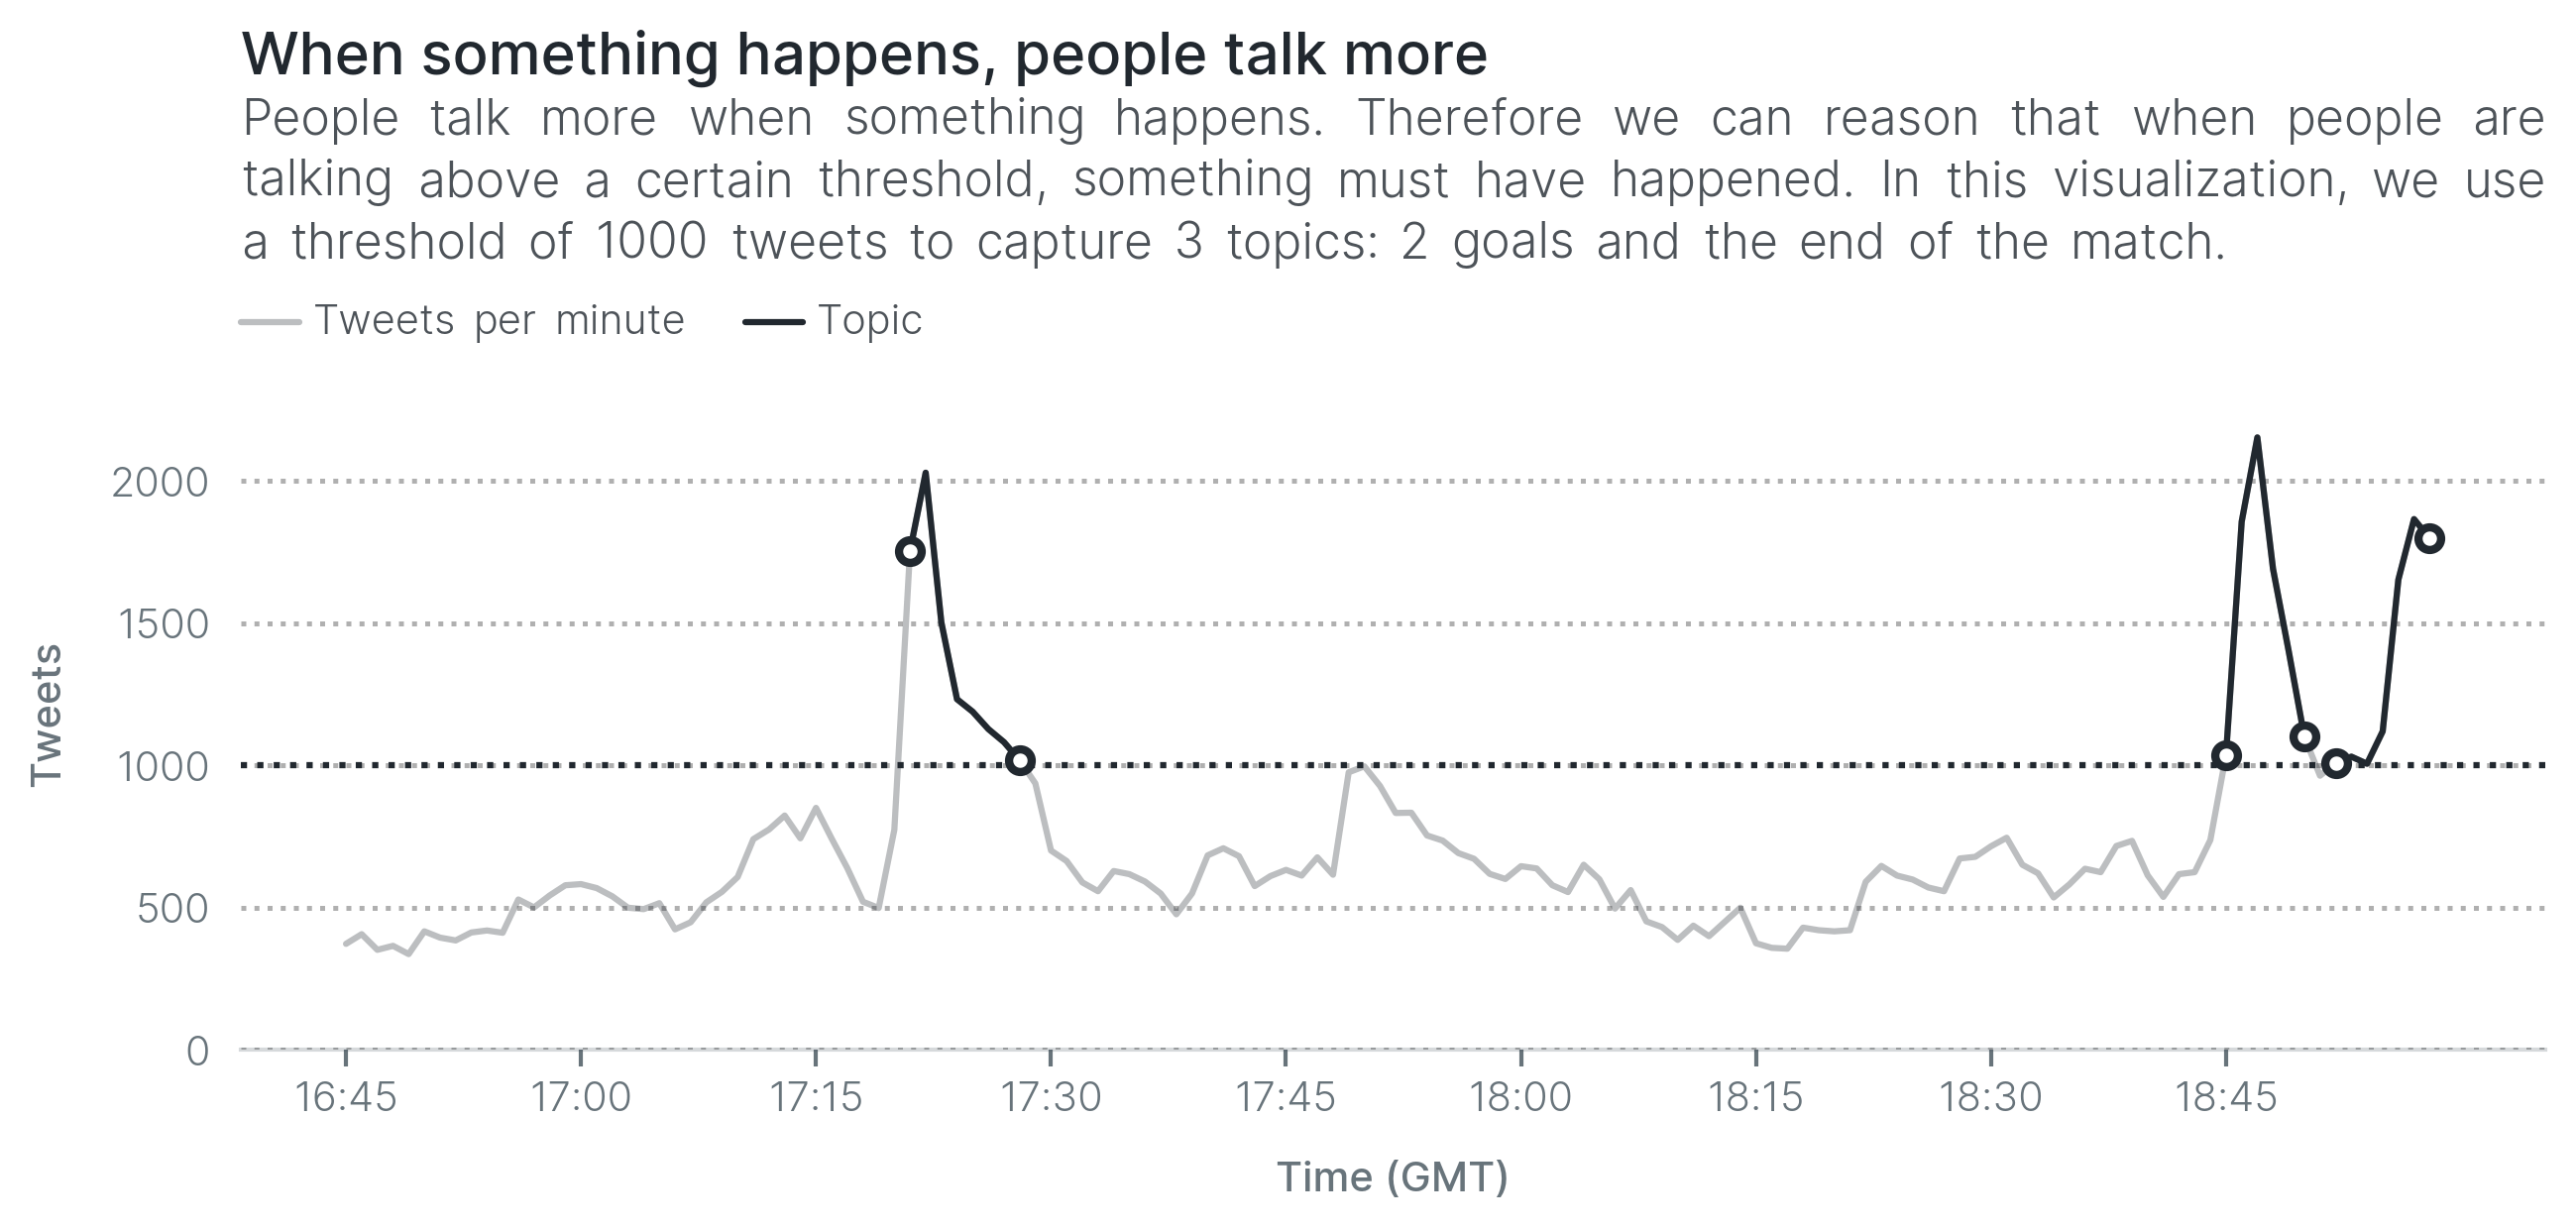 When something happens, people talk more. People talk more when something happens. Therefore we can reason that when people are talking above a certain threshold, something must have happened. In this visualization, we use a threshold of 1000 tweets to capture 3 topics: 2 goals and the end of the match.